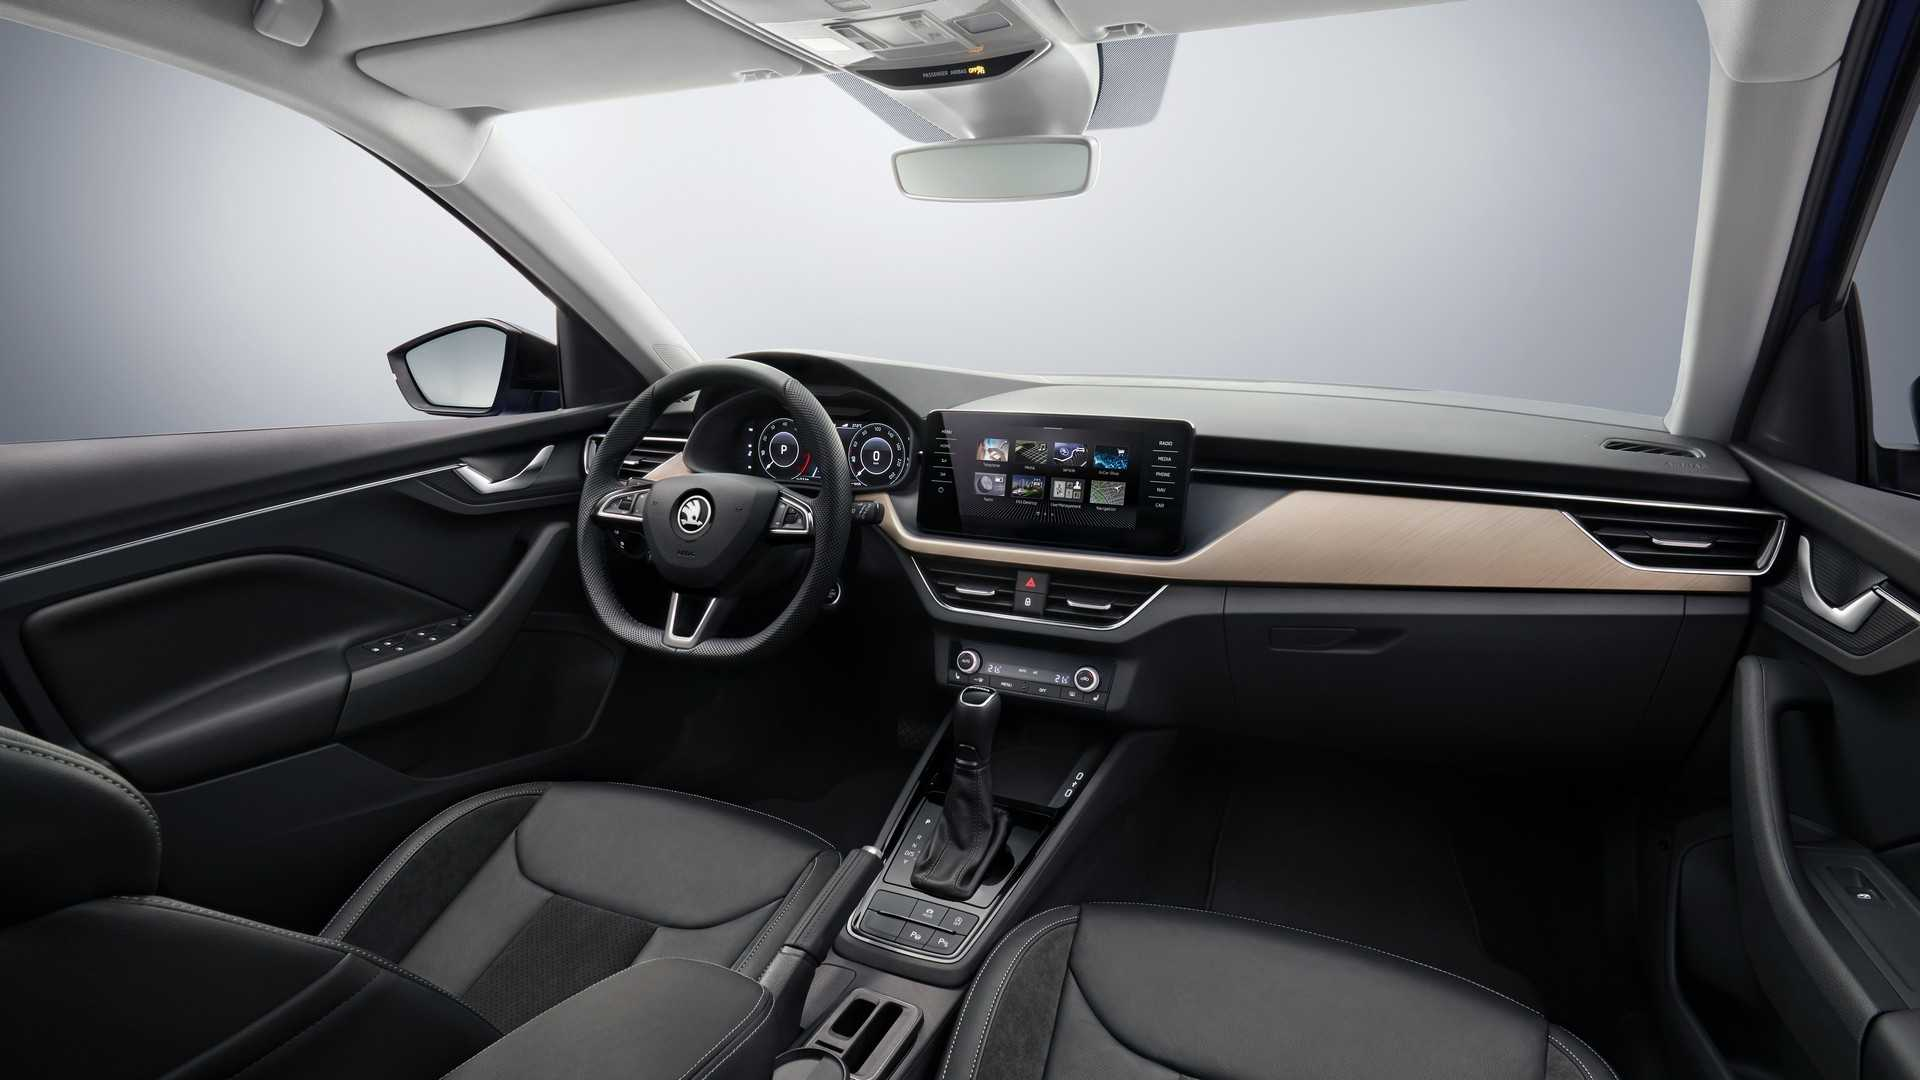 2019 Skoda Scala Reveals Upscale Interior In Official Pics